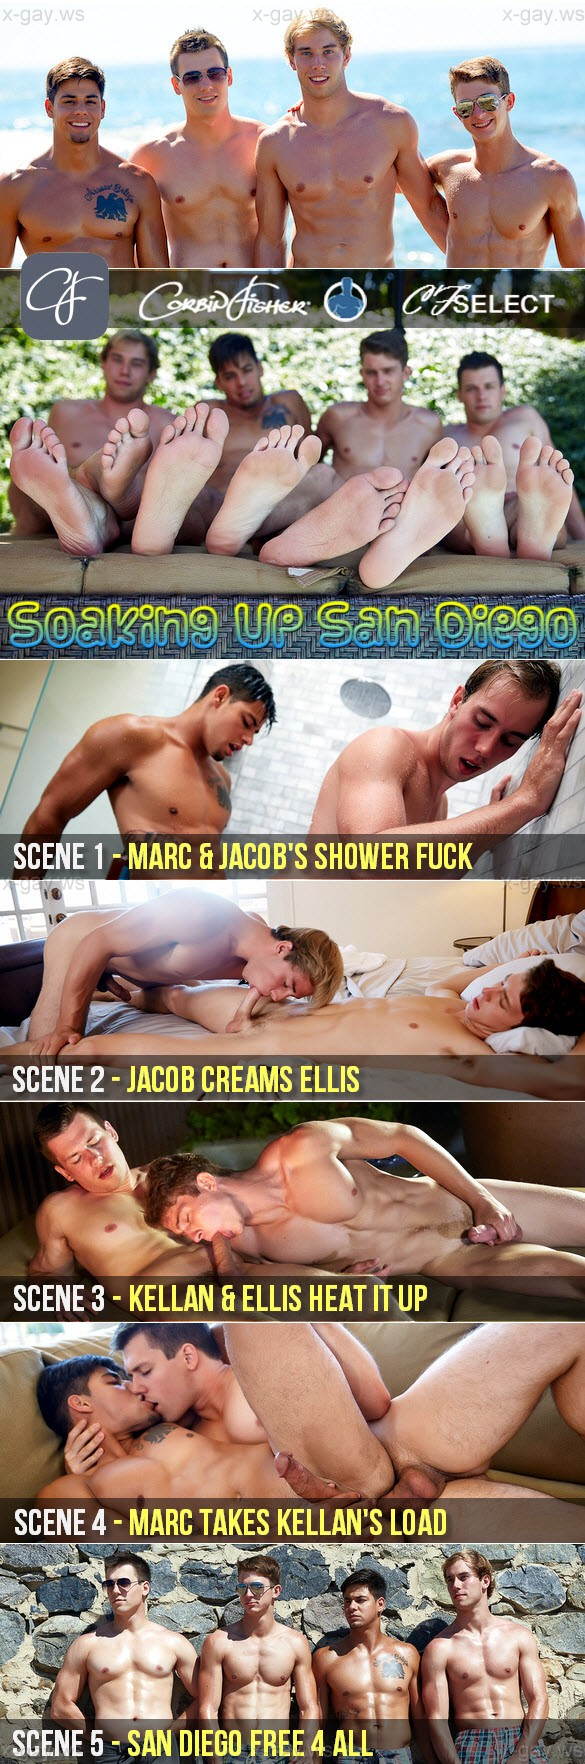 CorbinFisher – CFSelect – Soaking Up San Diego, Bareback (5 scenes)